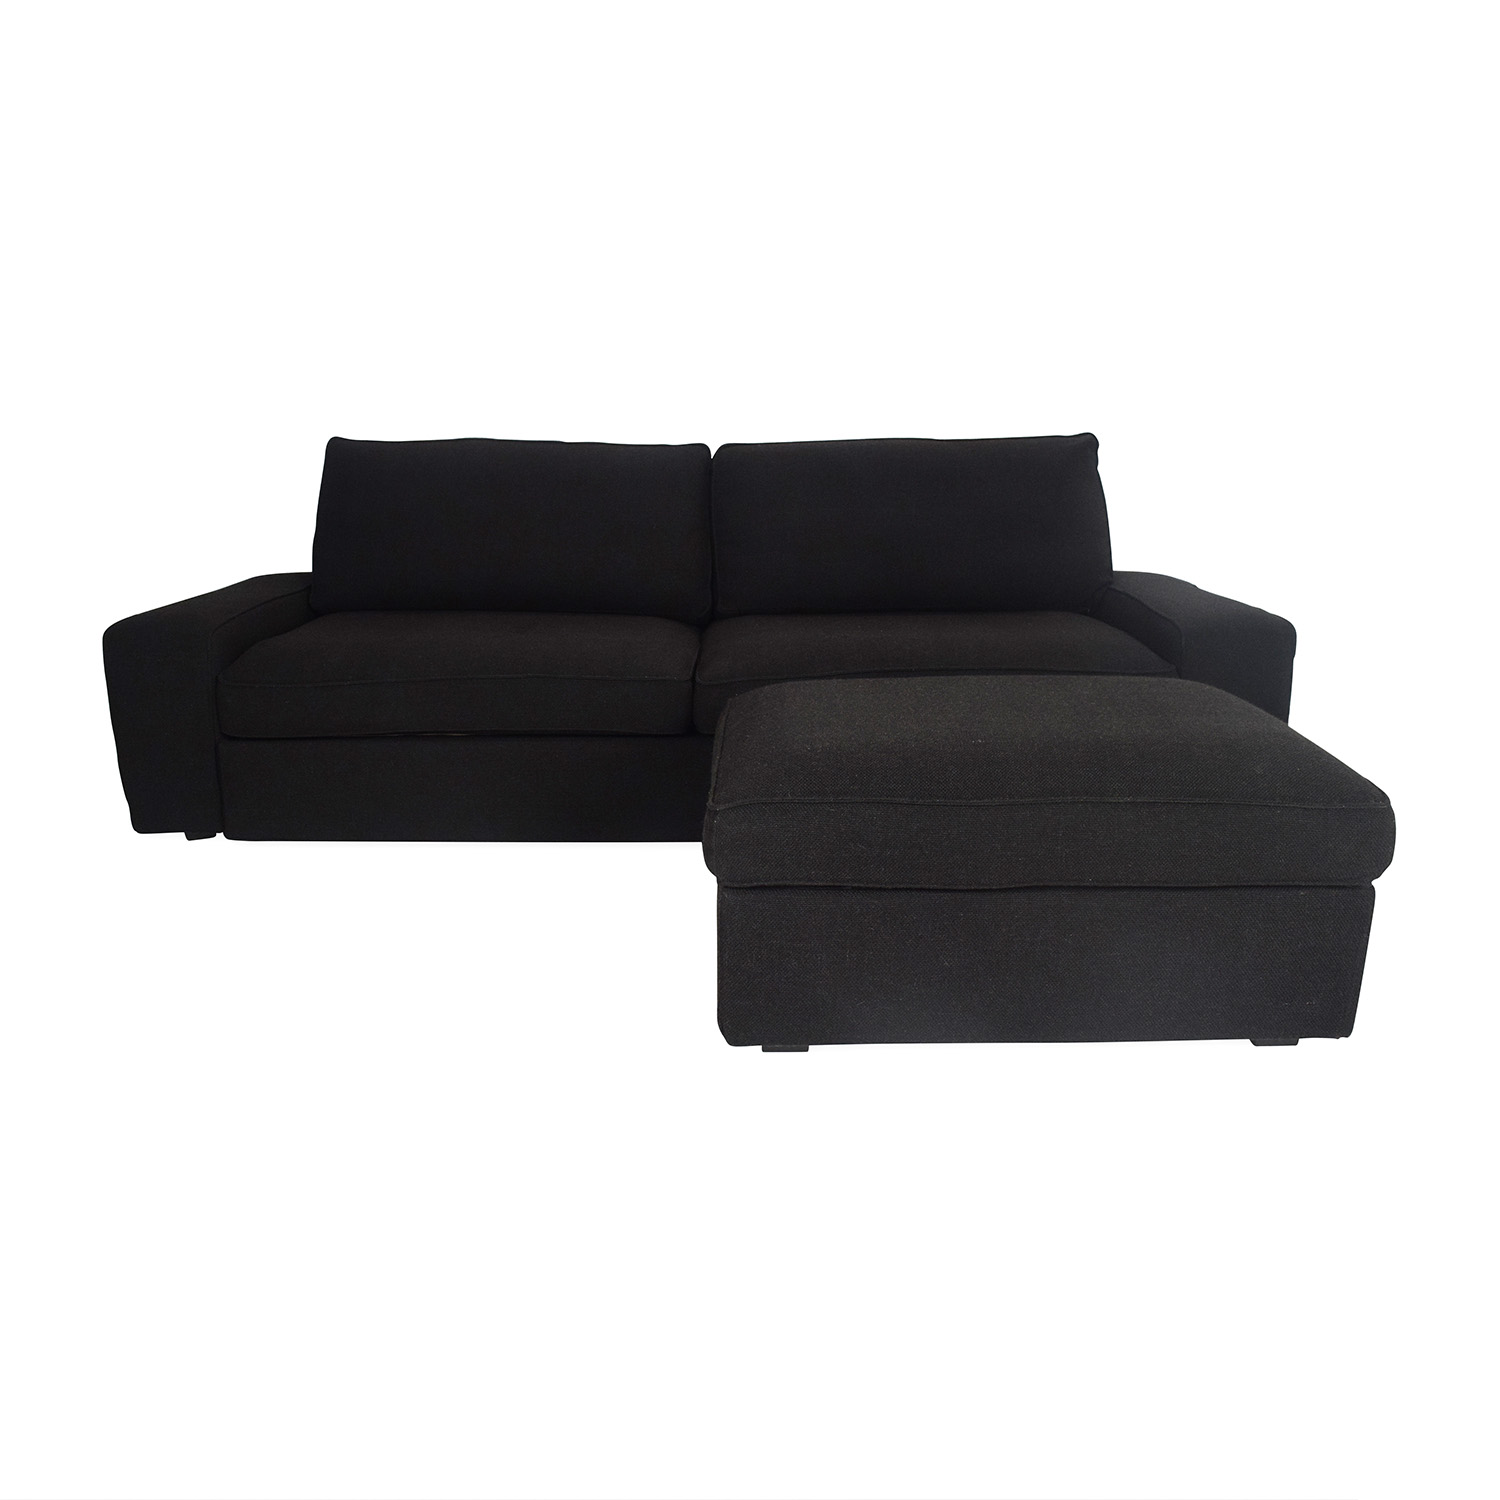 Buy Oversized Sofa Used Furniture On Sale